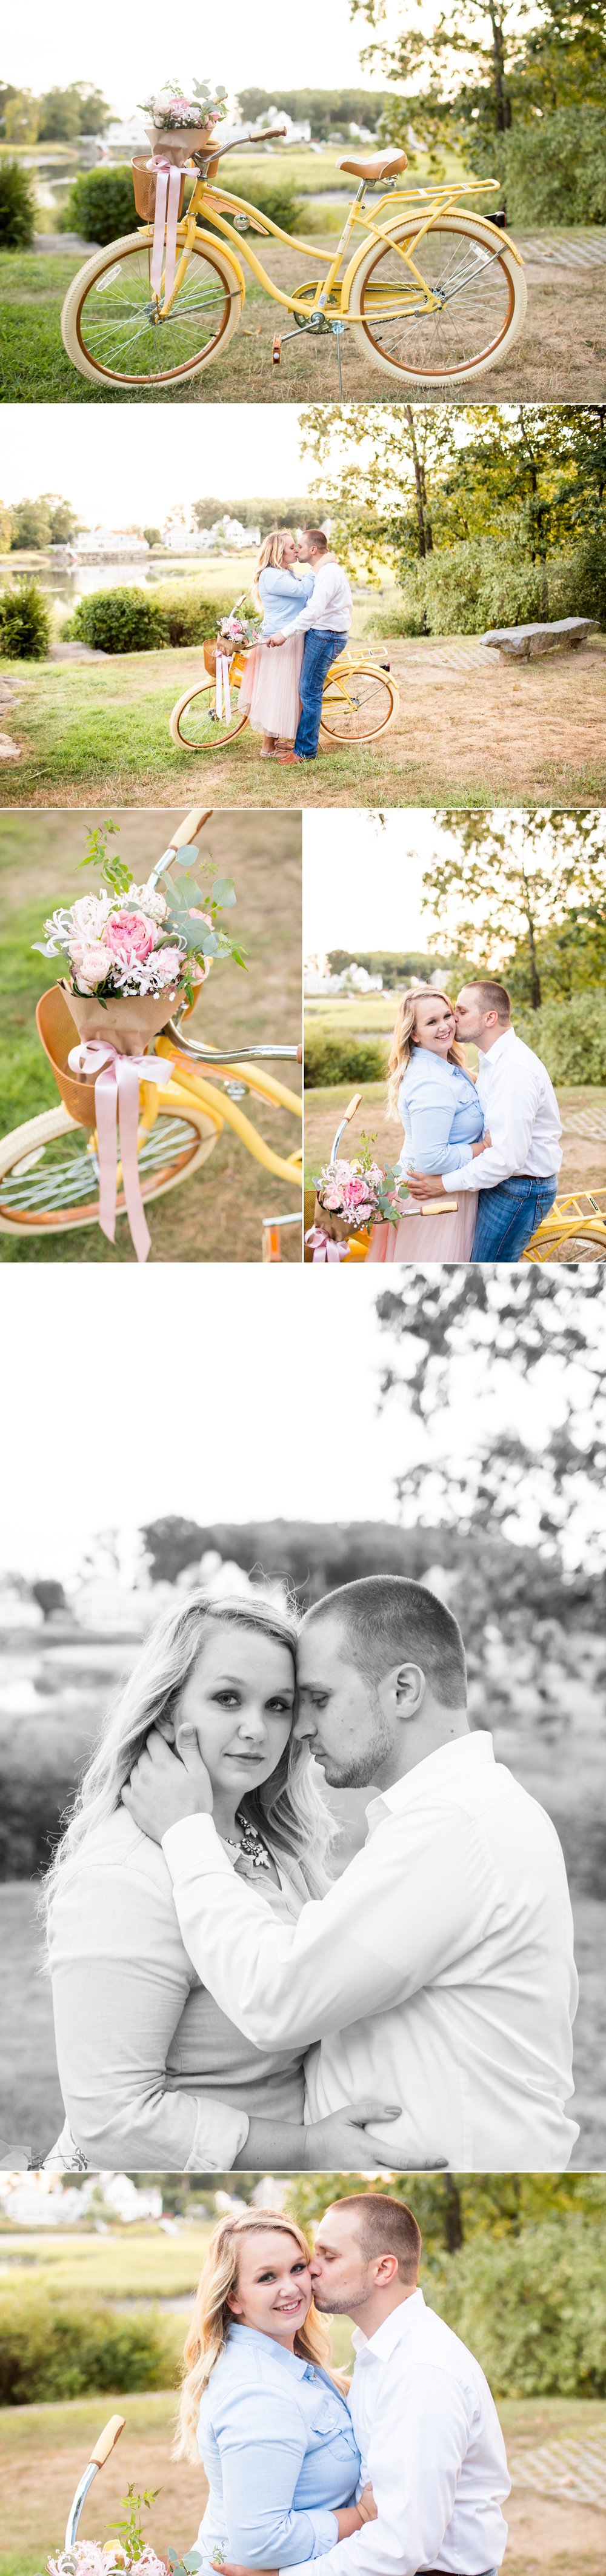 Rowayton, CT Summer Engagement Session Featured on Reverie Gallery | CT, NYC + Destination Luxury Wedding + Engagement Photographer | Shaina Lee Photography